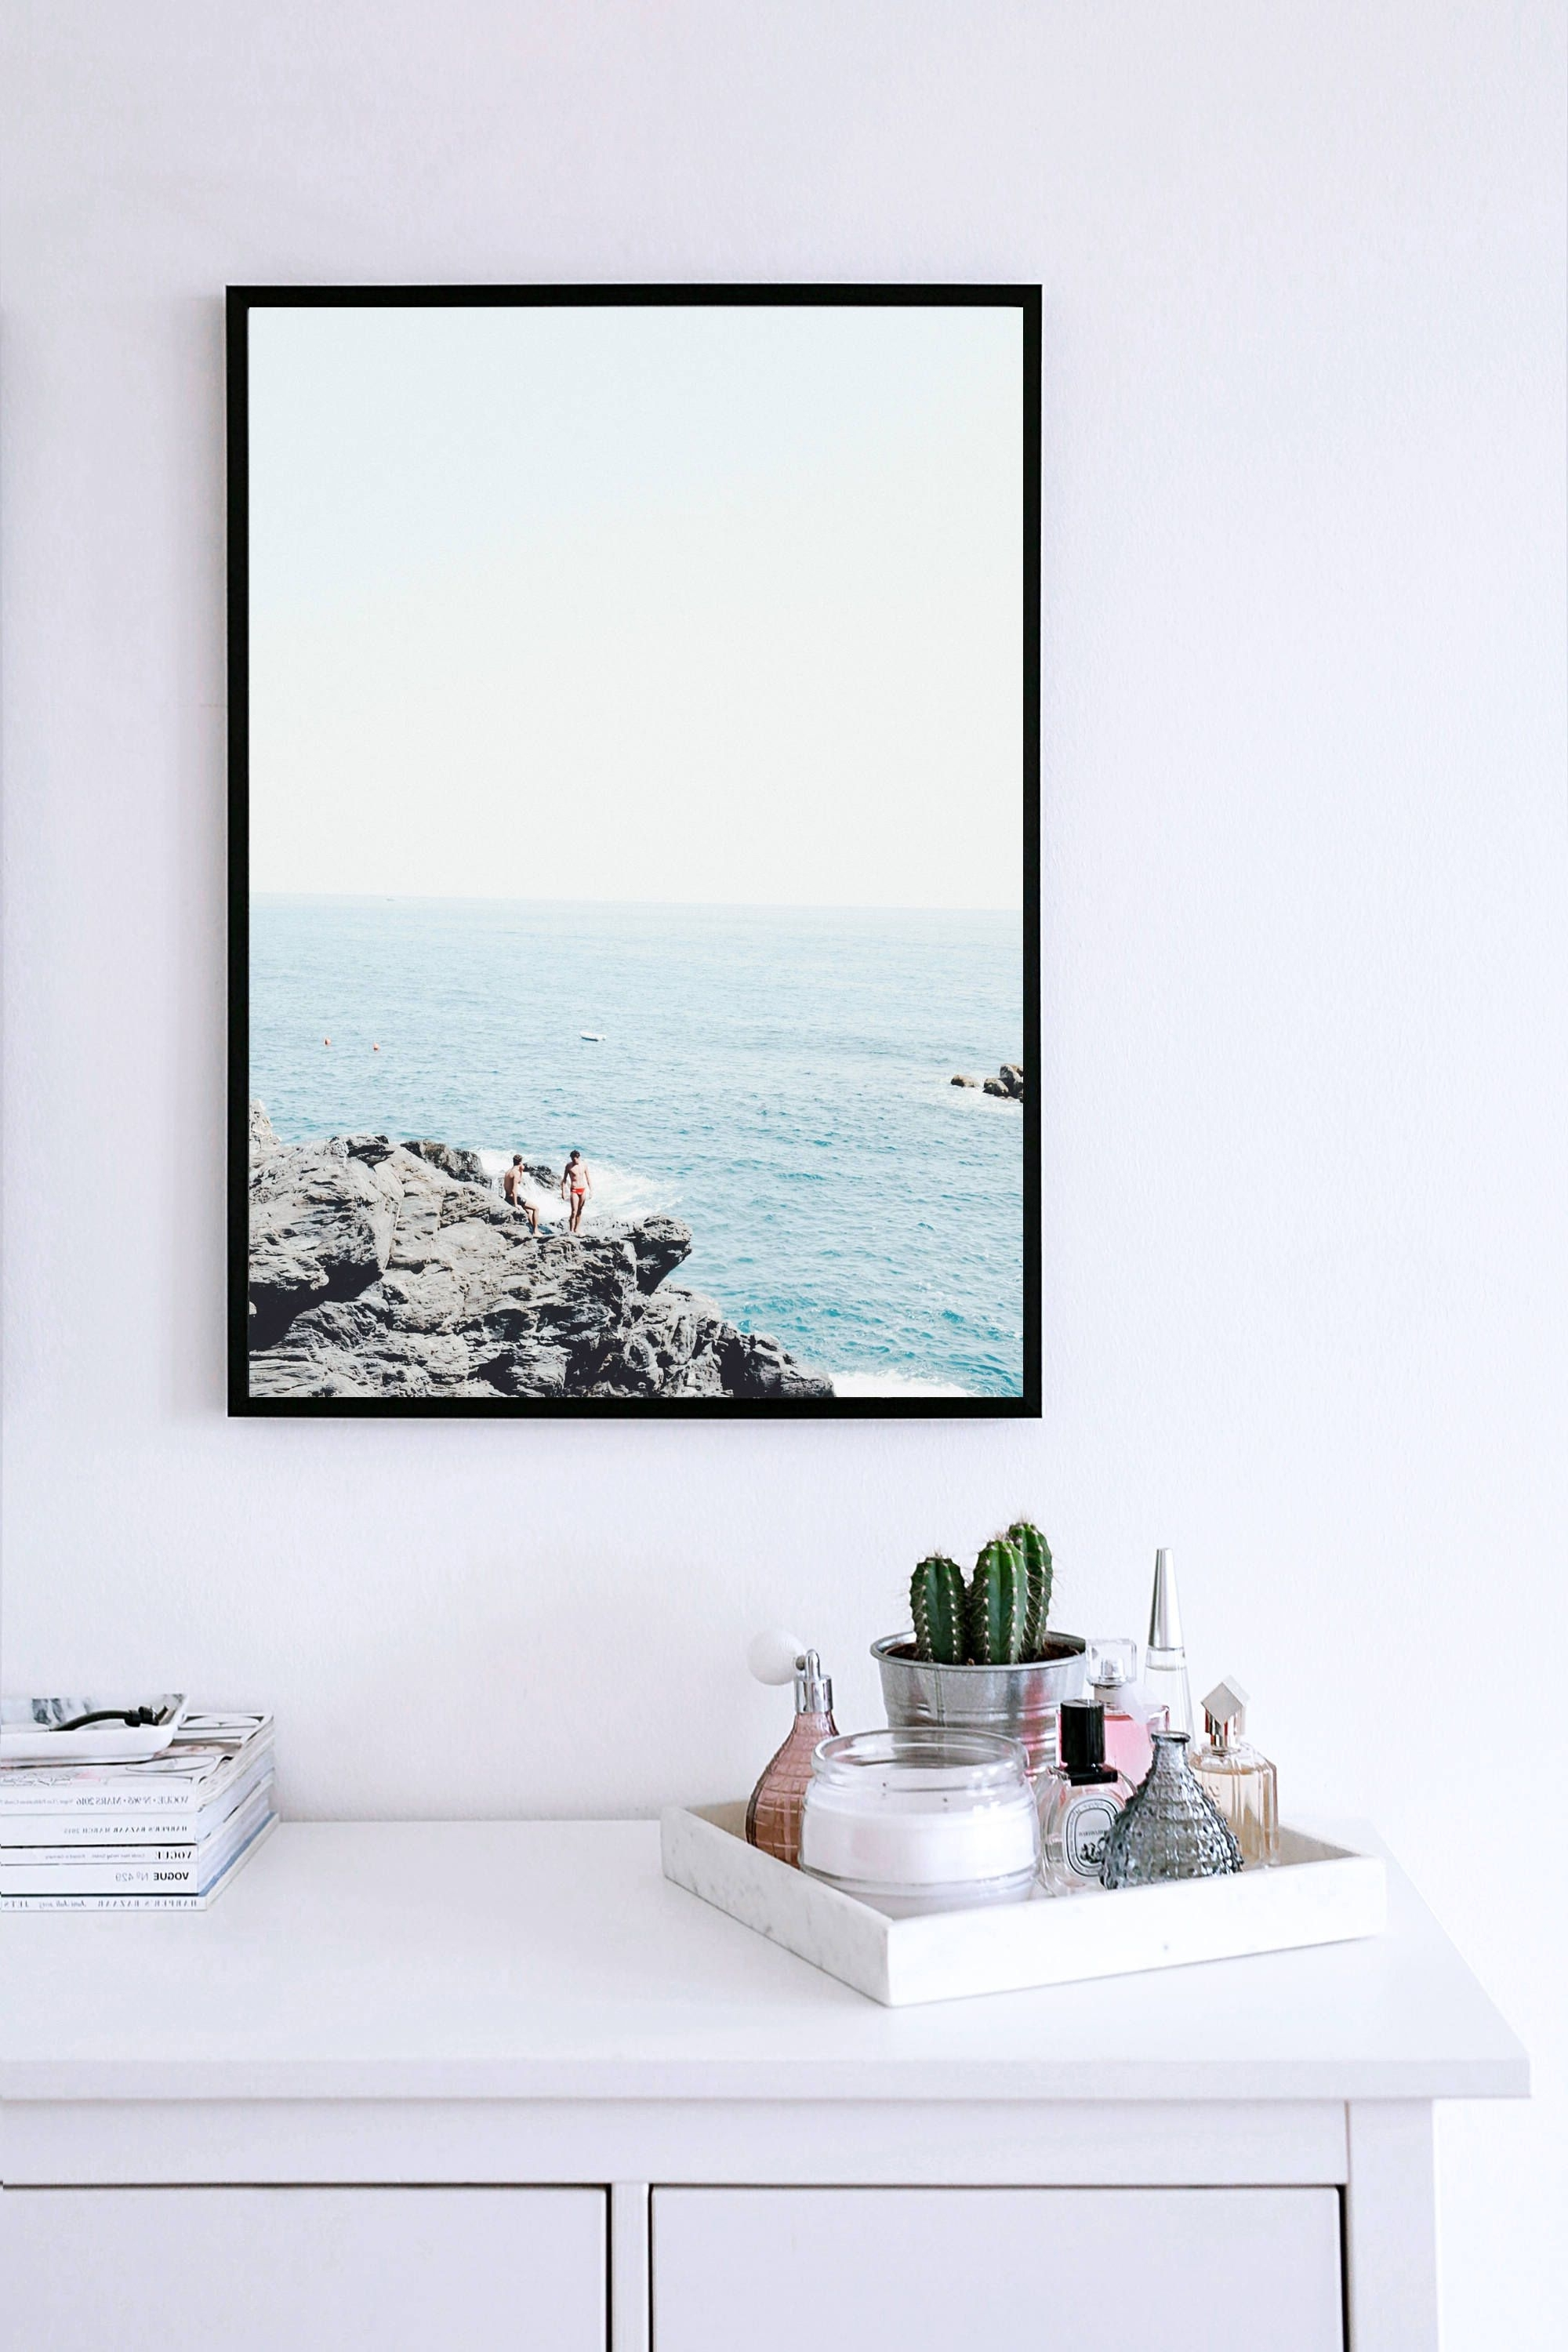 Most Recent Beach Print, Nature Wall Art Prints, Photography Prints, Coastal Pertaining To Nature Wall Art (View 18 of 20)